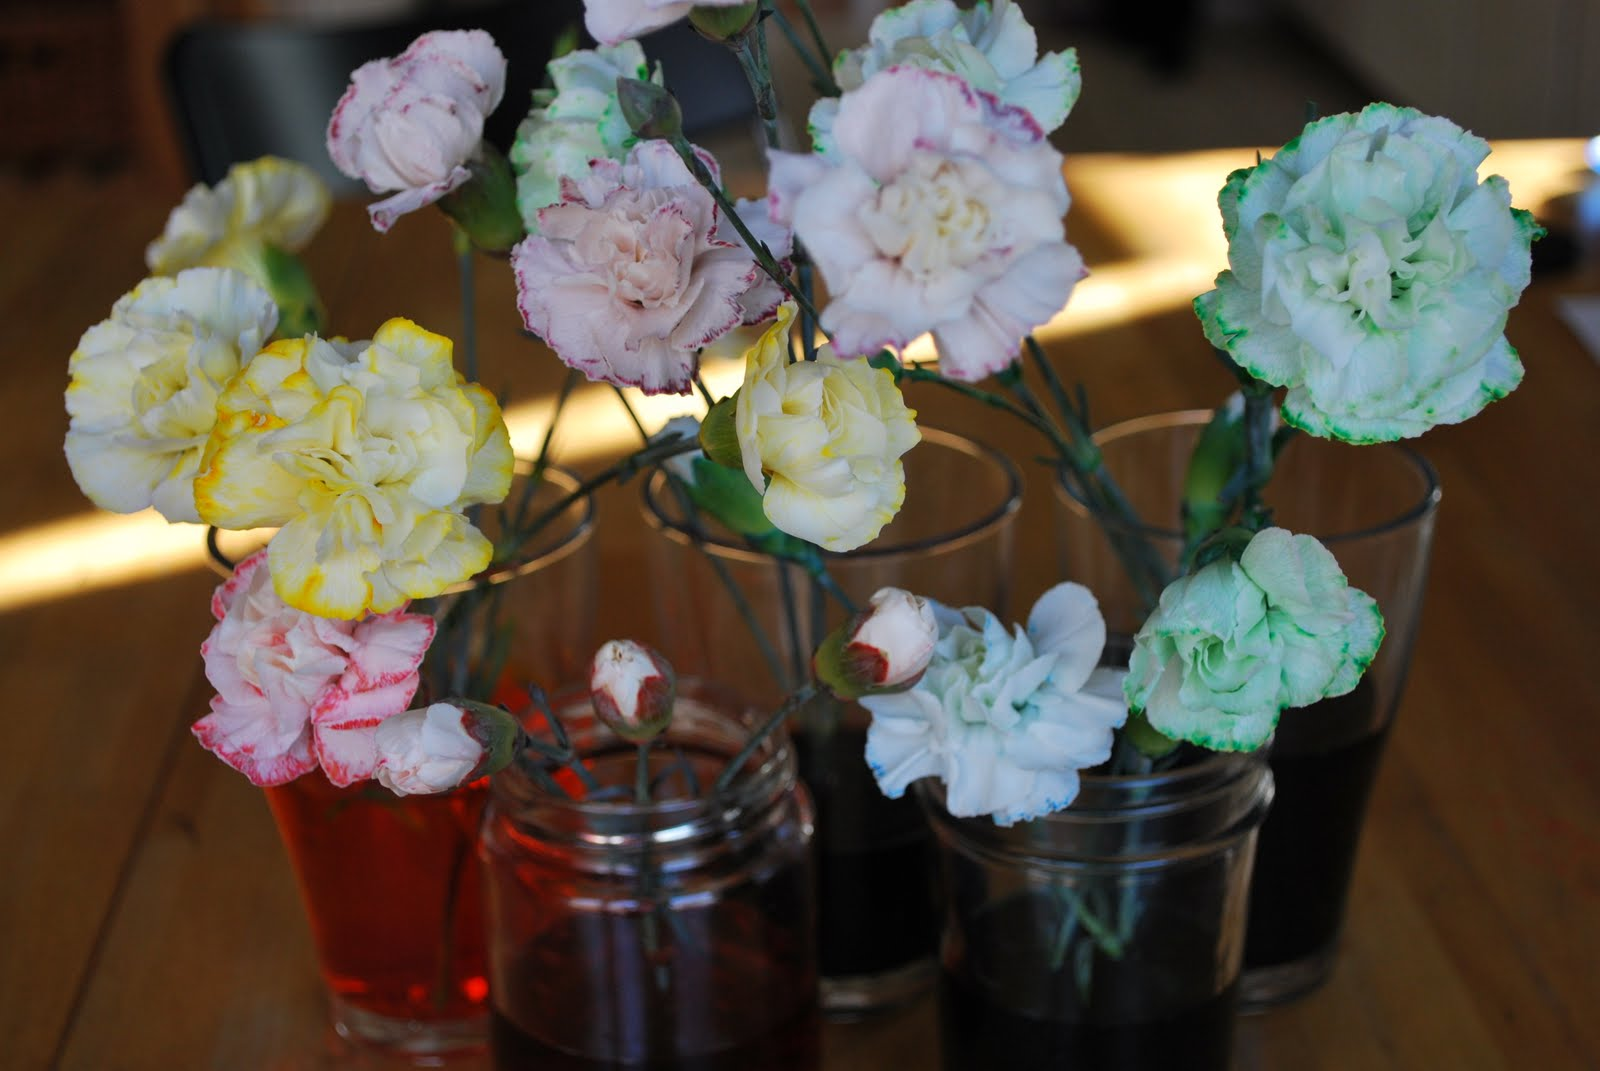 Carnation Color Changing Flowers Lesson | Gardening: Flower and ...